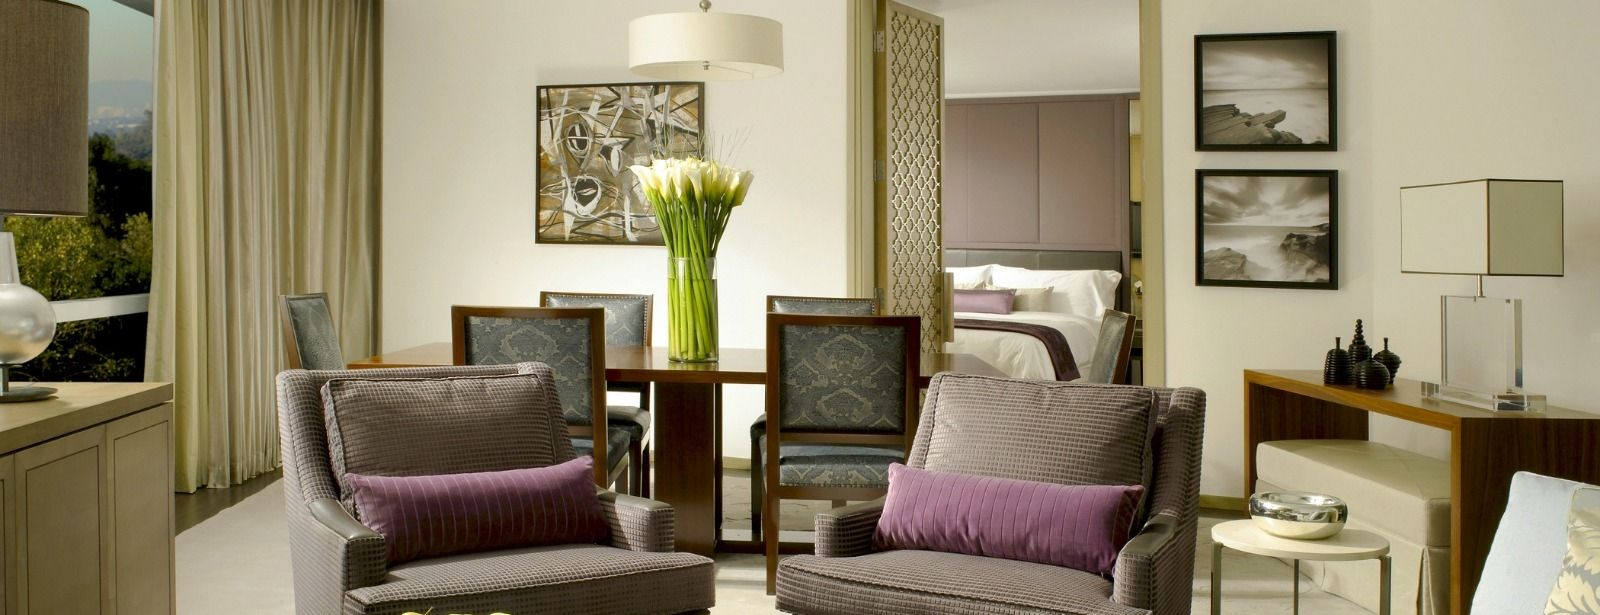 Suite Luxury - St. Regis Mexico City